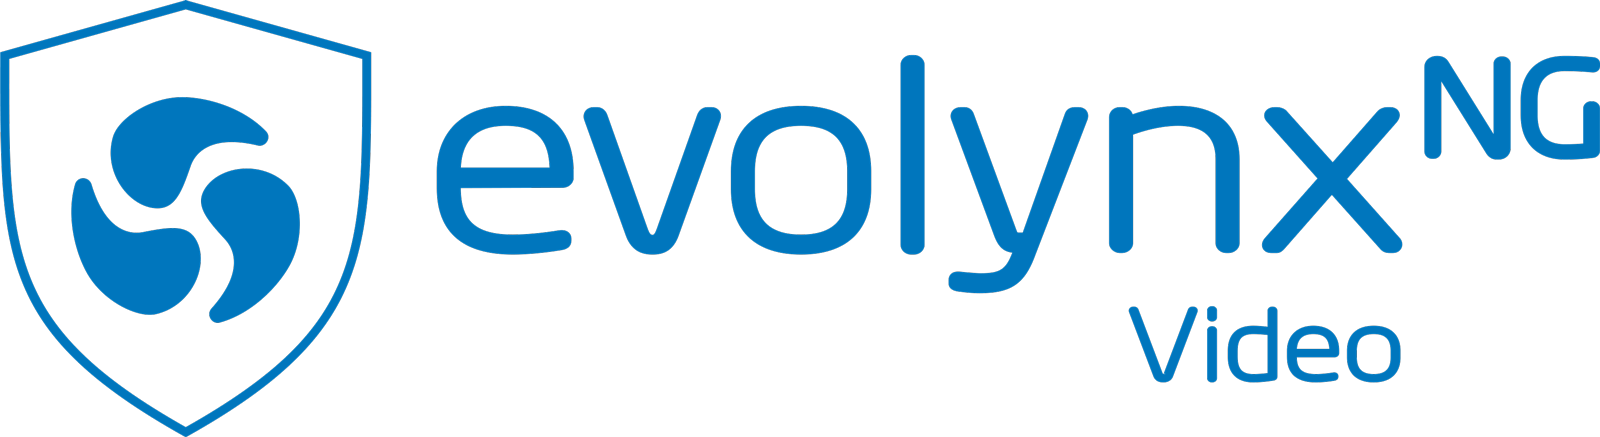 logo evolynxNG software video